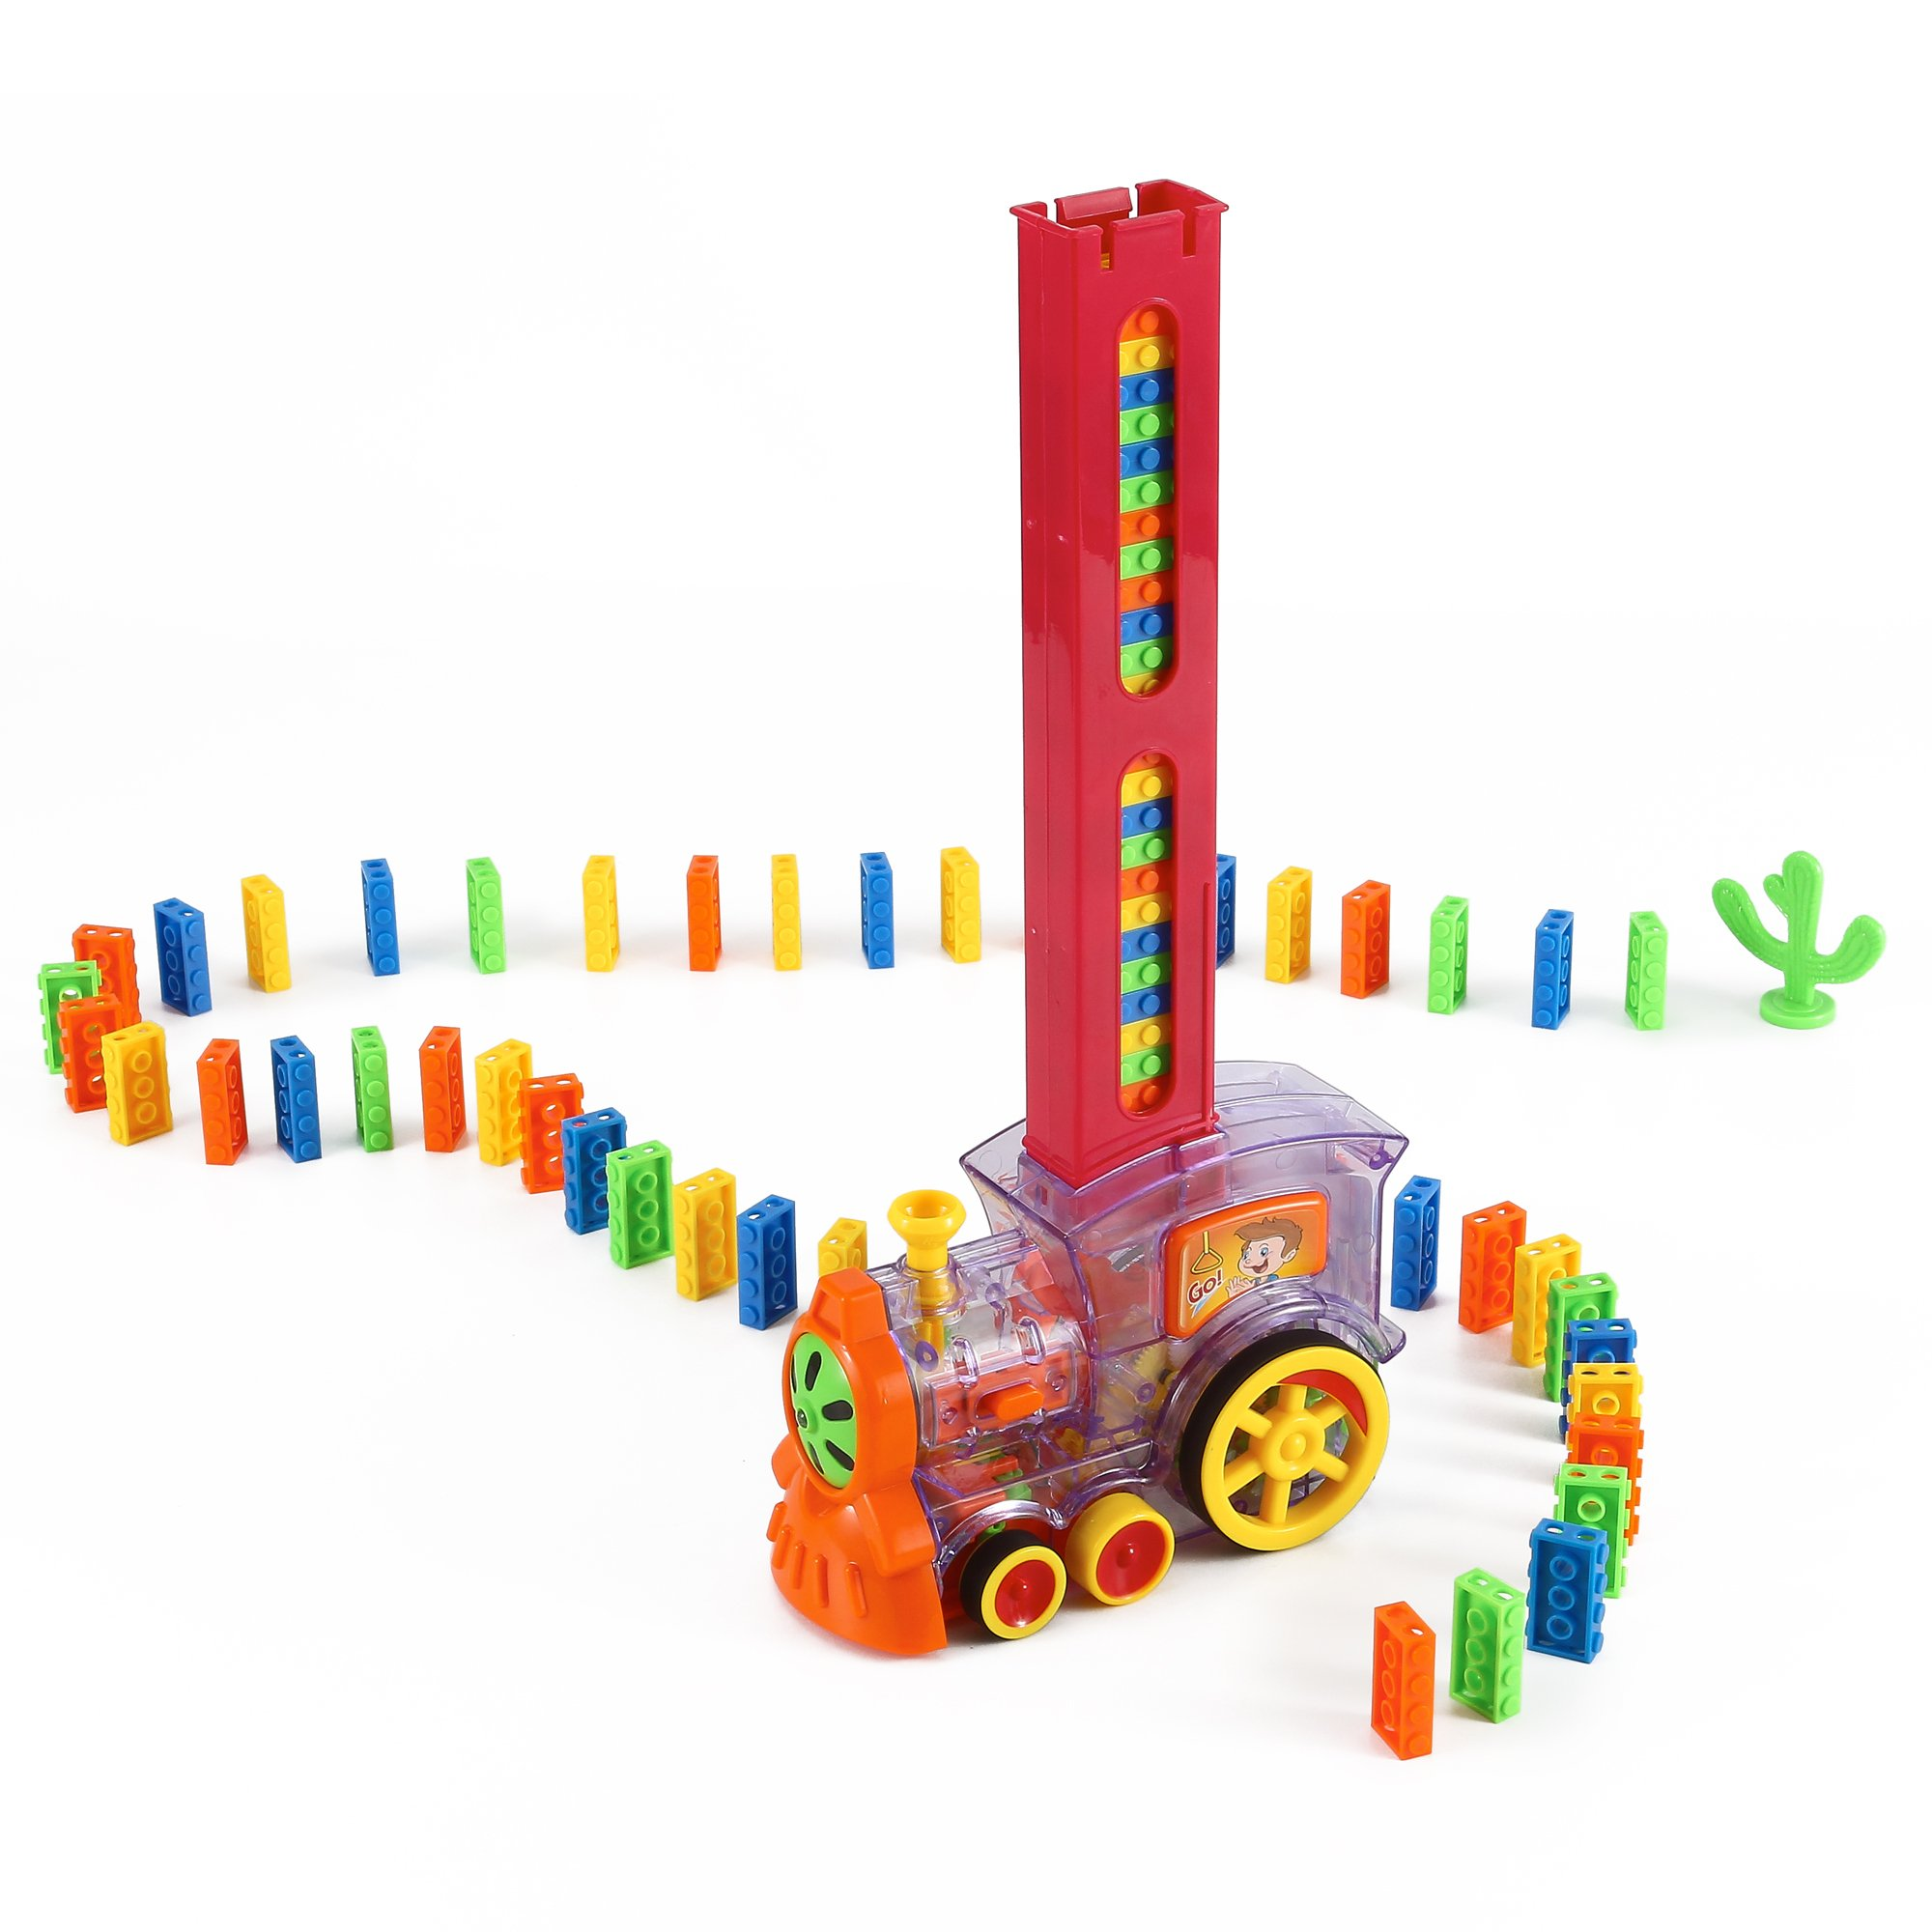 B/O Domino Train Toy Set with Lights and Sound